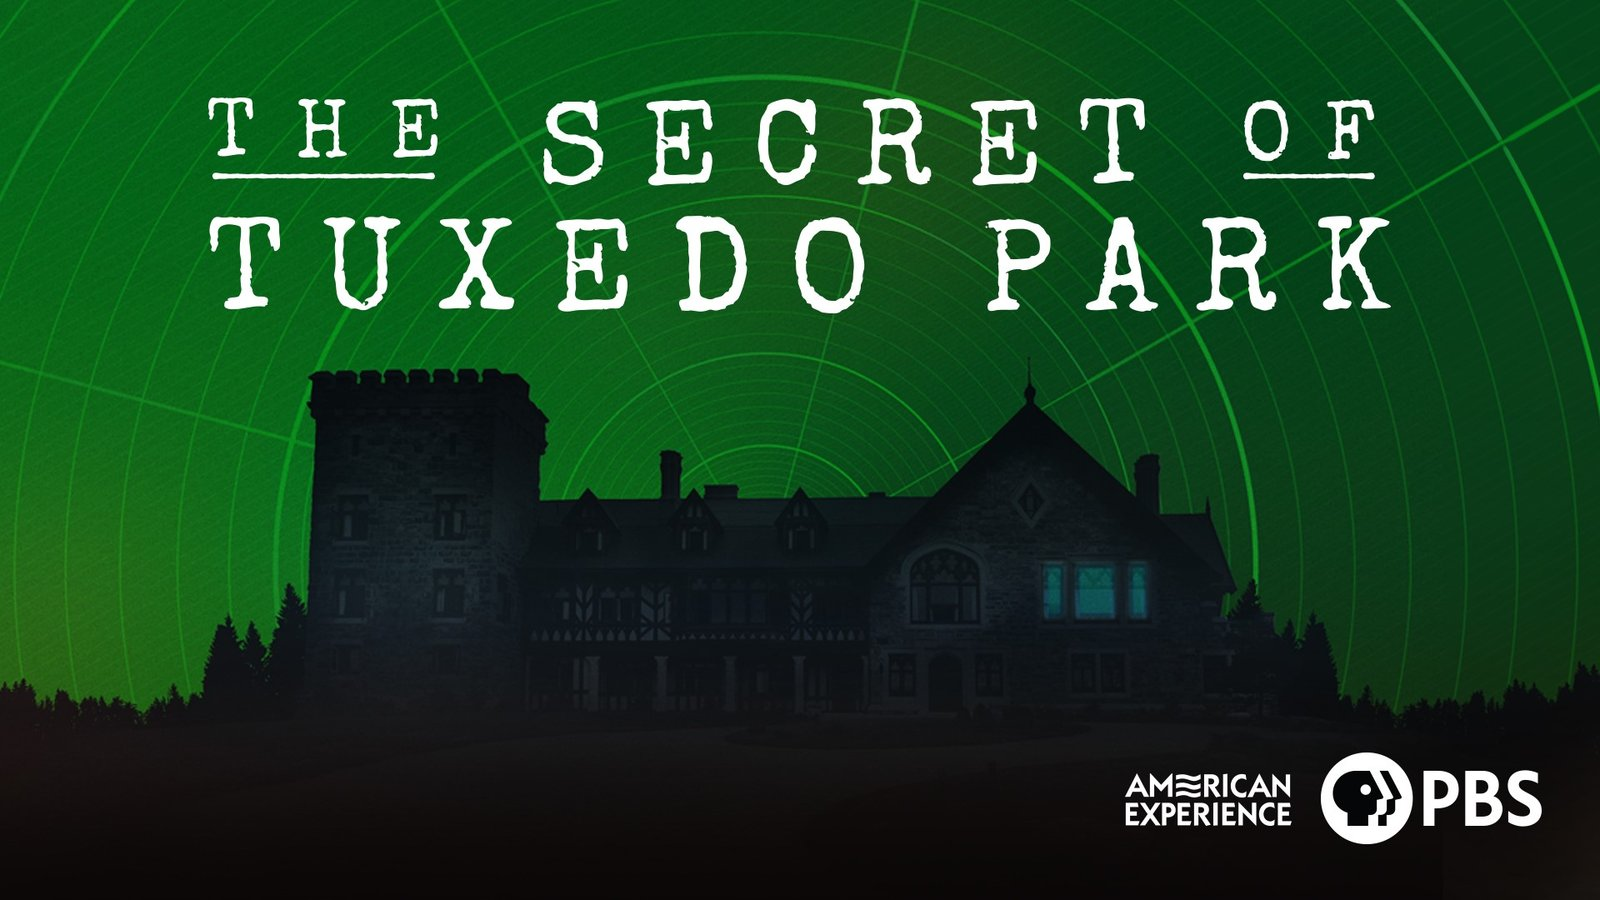 The Secret of Tuxedo Park